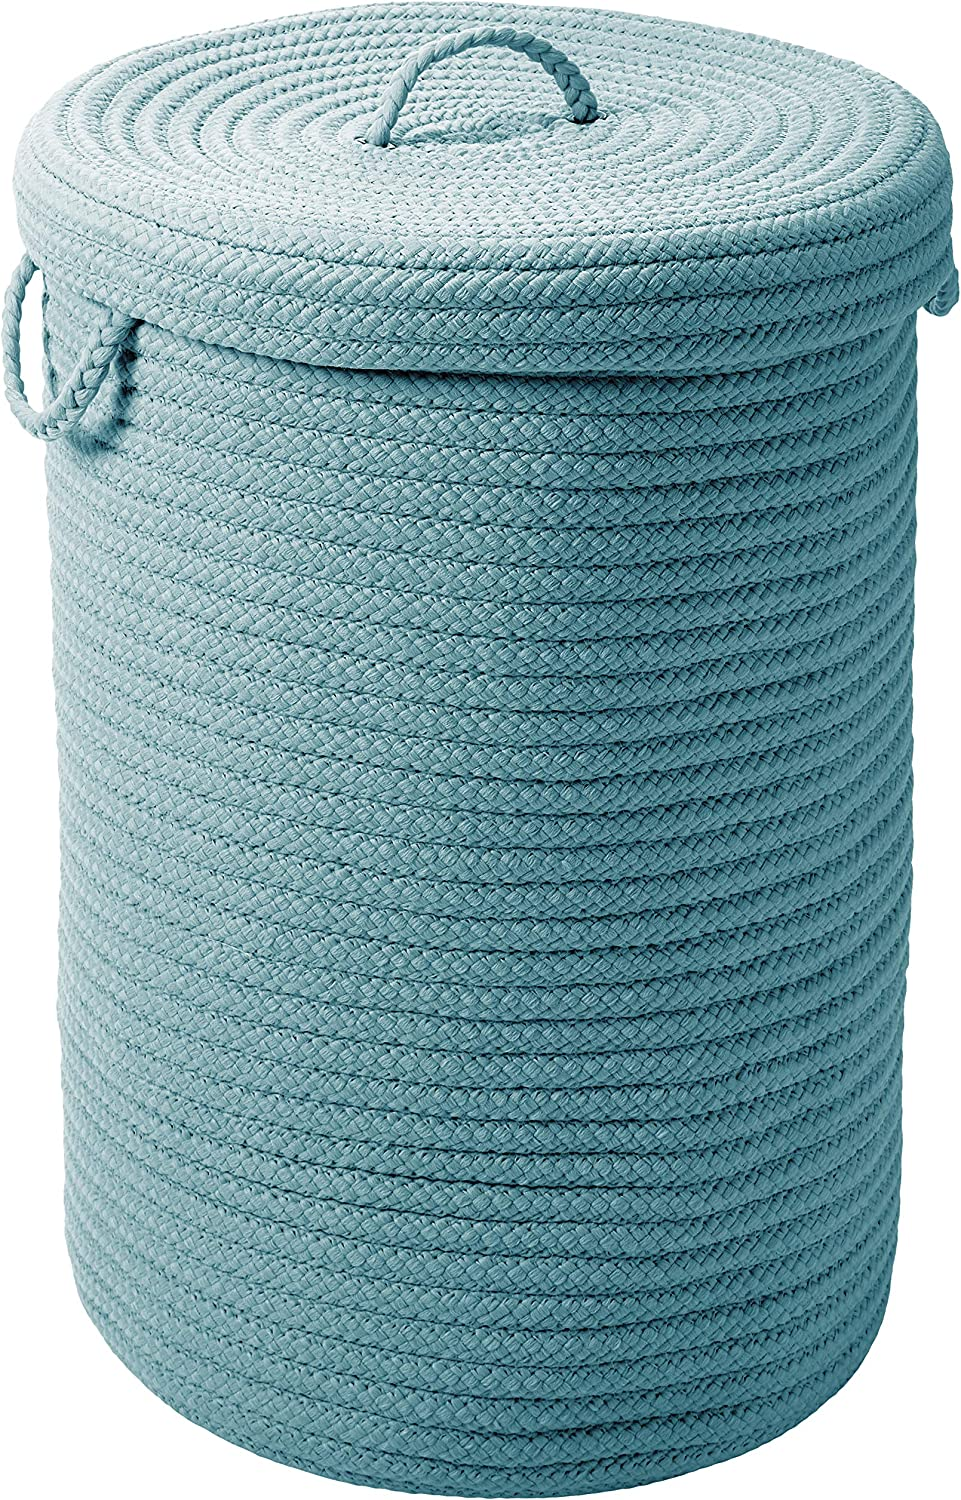 Colonial Mills H101A016X024 Simply Home Solid Storage Hamper with Lid, Large, Federal bluee